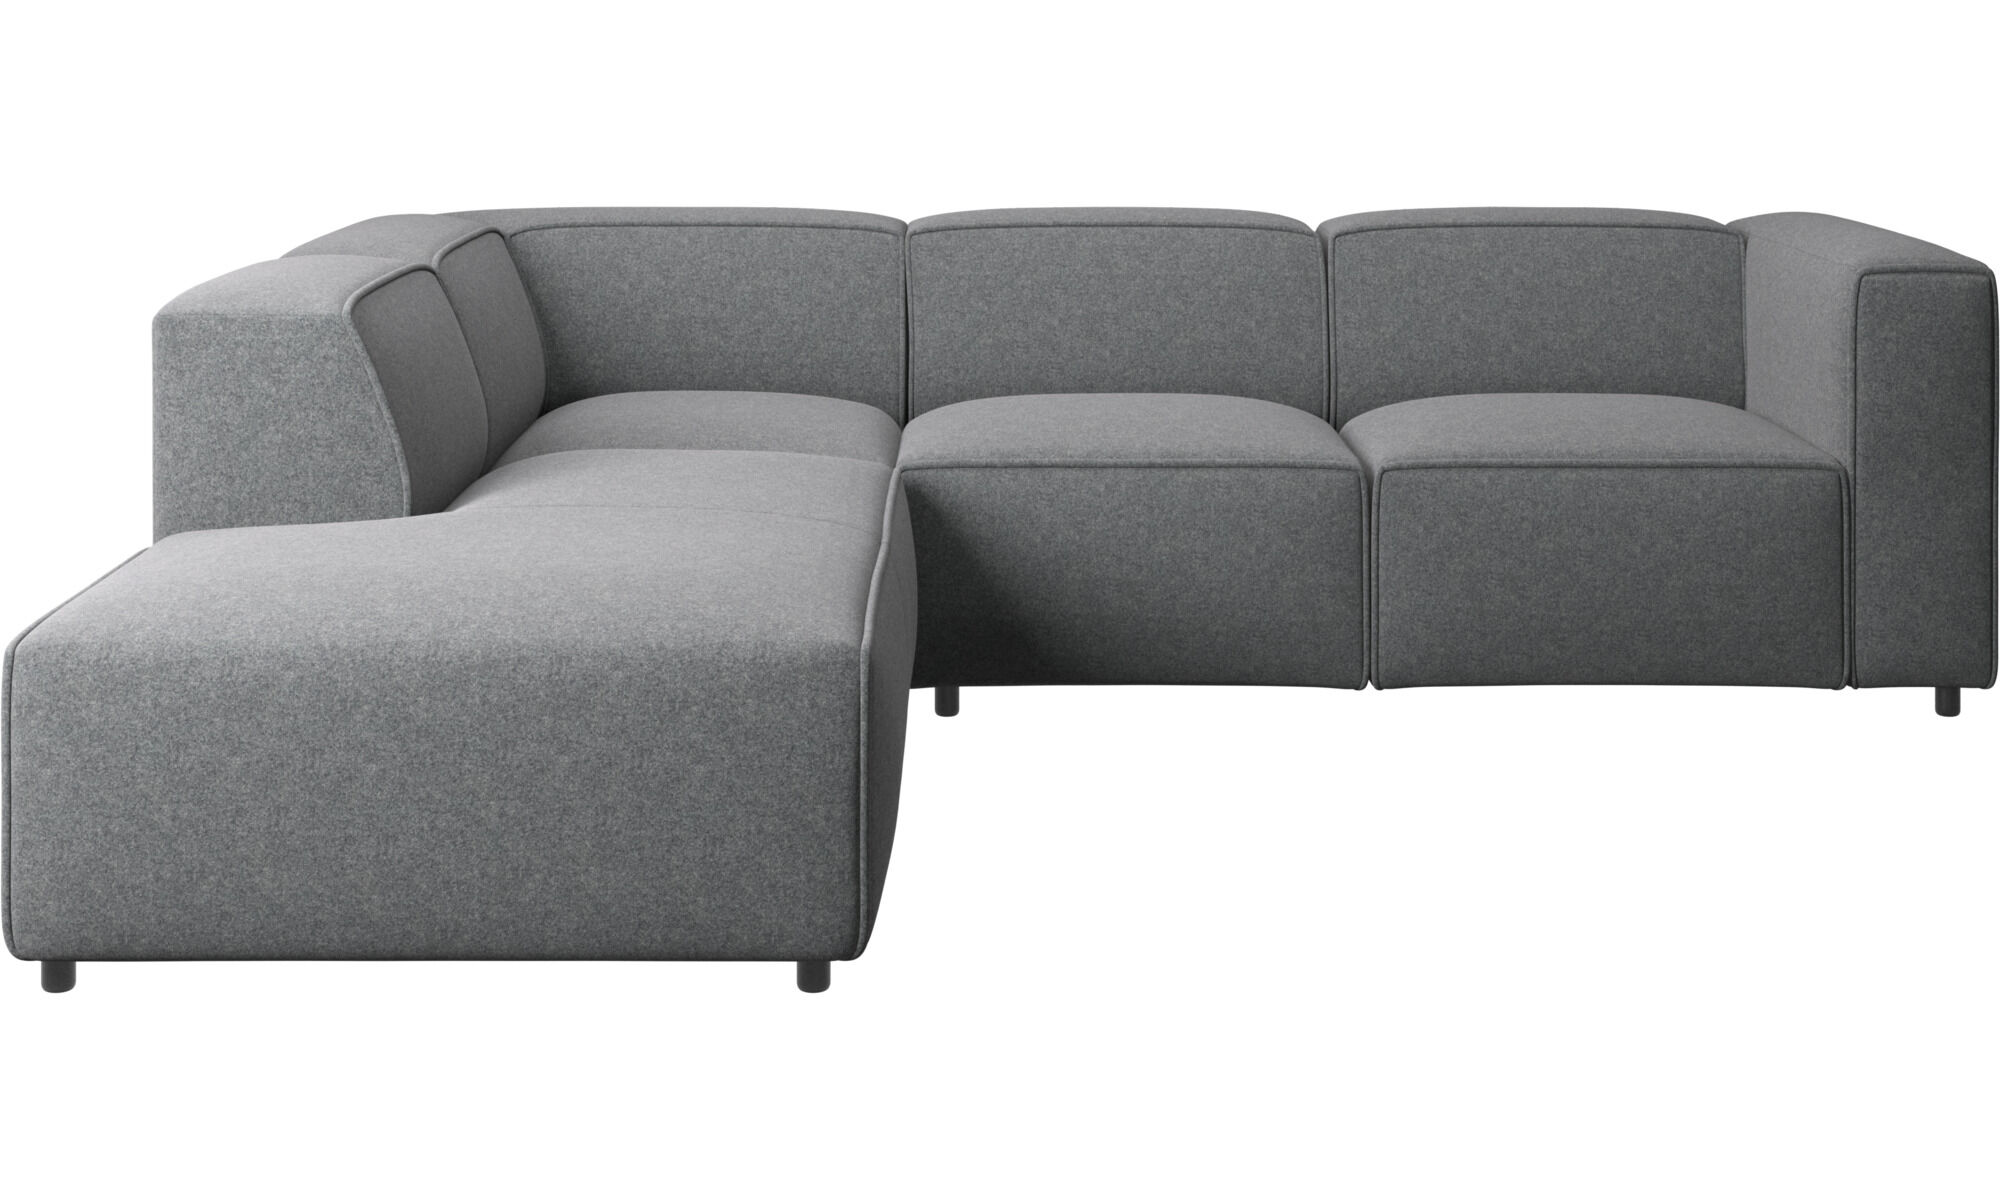 Chaise Lounge Sofas   Carmo Motion Corner Sofa   Gray   Fabric